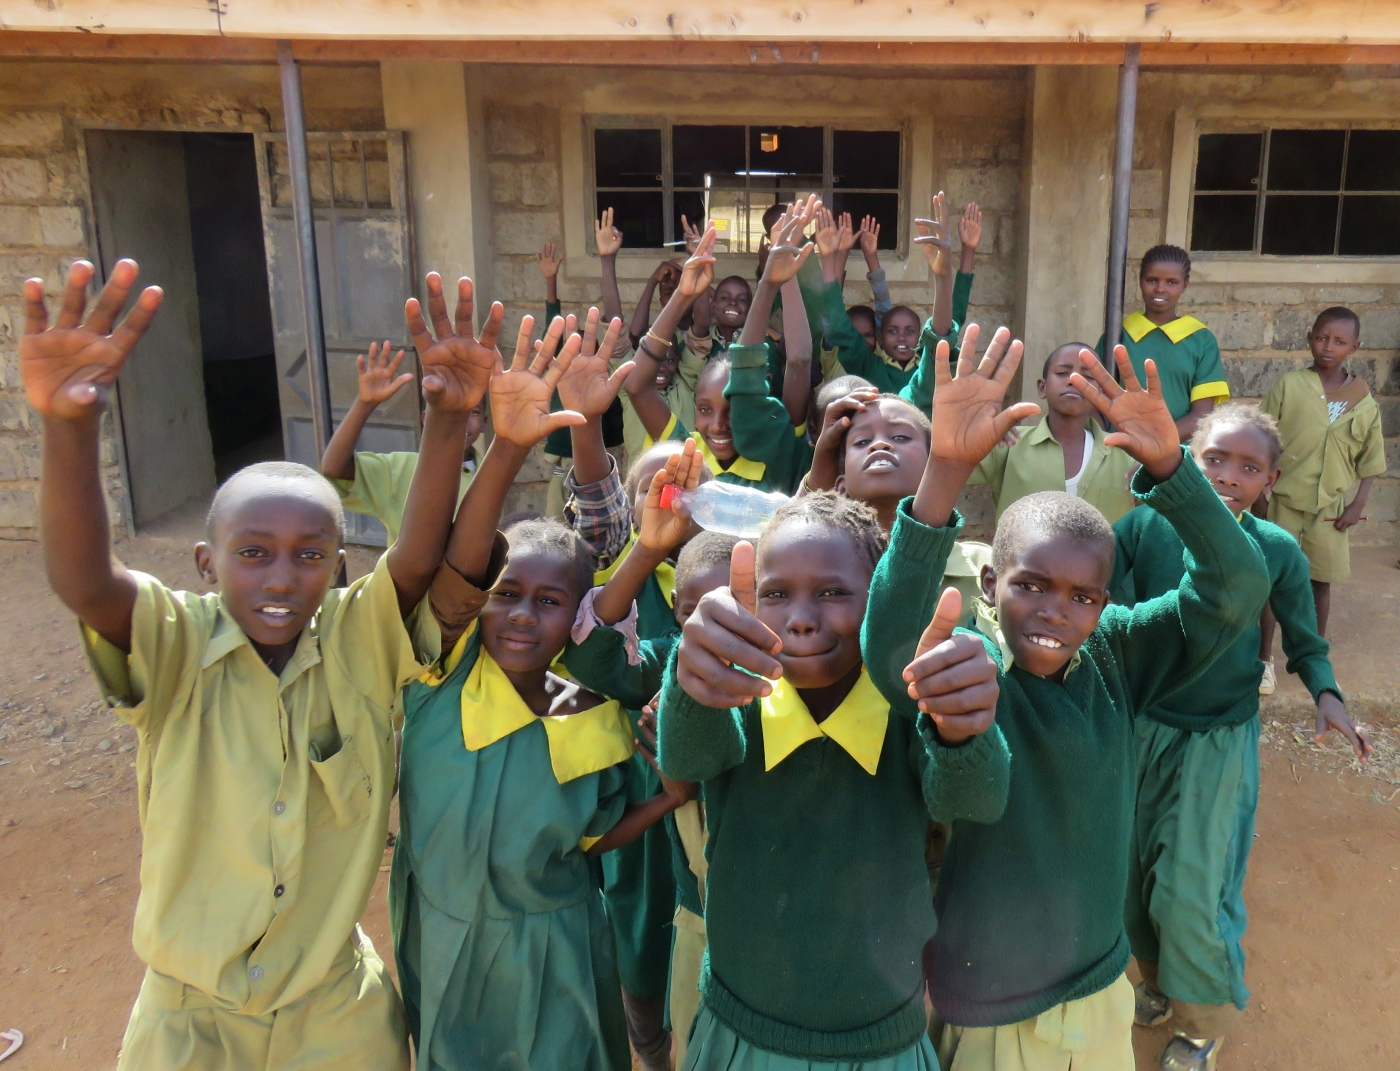 Primary school students in Laikipia, Kenya, pose for a photo in front of a building. Some of the students are raising their hands and giving a thumbs up